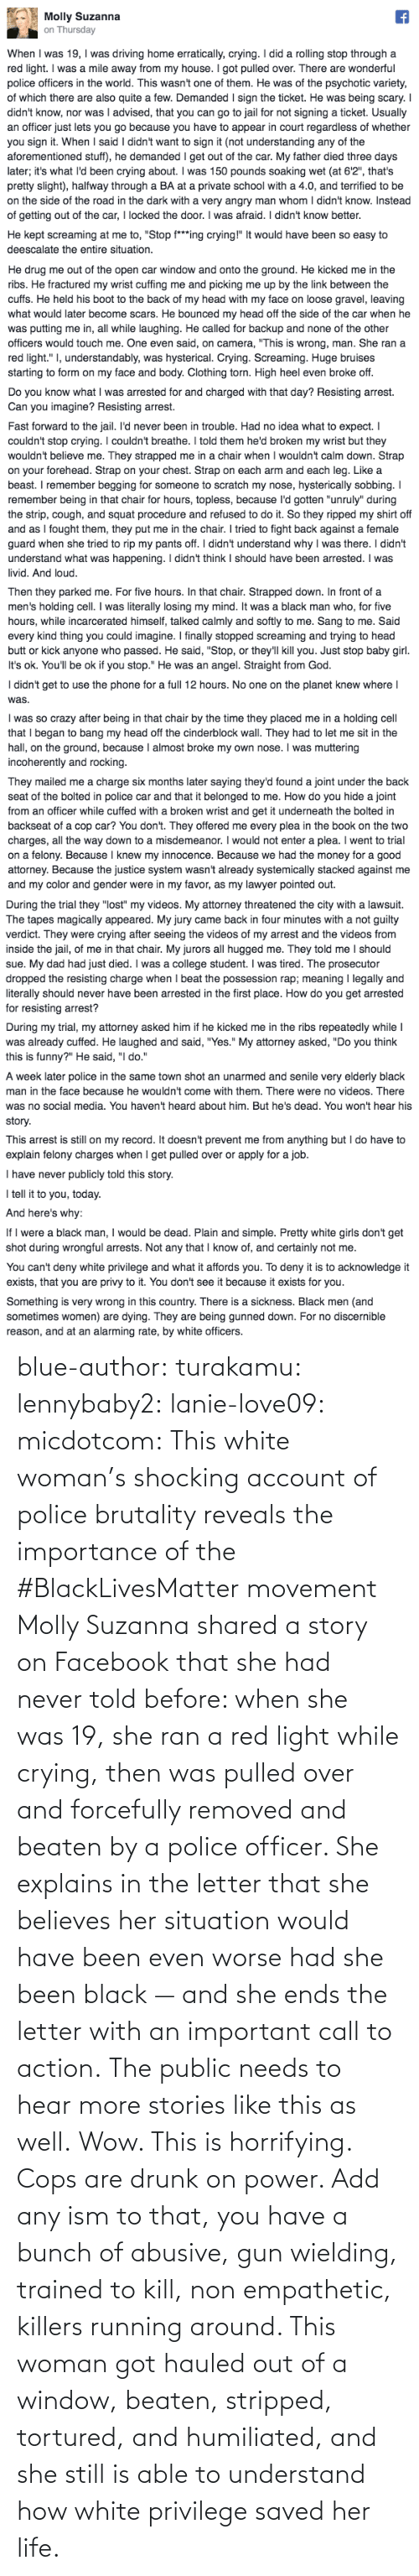 then: blue-author: turakamu:  lennybaby2:  lanie-love09:  micdotcom:  This white woman's shocking account of police brutality reveals the importance of the #BlackLivesMatter movement Molly Suzanna shared a story on Facebook that she had never told before: when she was 19, she ran a red light while crying, then was pulled over and forcefully removed and beaten by a police officer. She explains in the letter that she believes her situation would have been even worse had she been black — and she ends the letter with an important call to action.  The public needs to hear more stories like this as well.  Wow. This is horrifying.  Cops are drunk on power. Add any ism to that, you have a bunch of abusive, gun wielding, trained to kill, non empathetic, killers running around.    This woman got hauled out of a window, beaten, stripped, tortured, and humiliated, and she still is able to understand how white privilege saved her life.